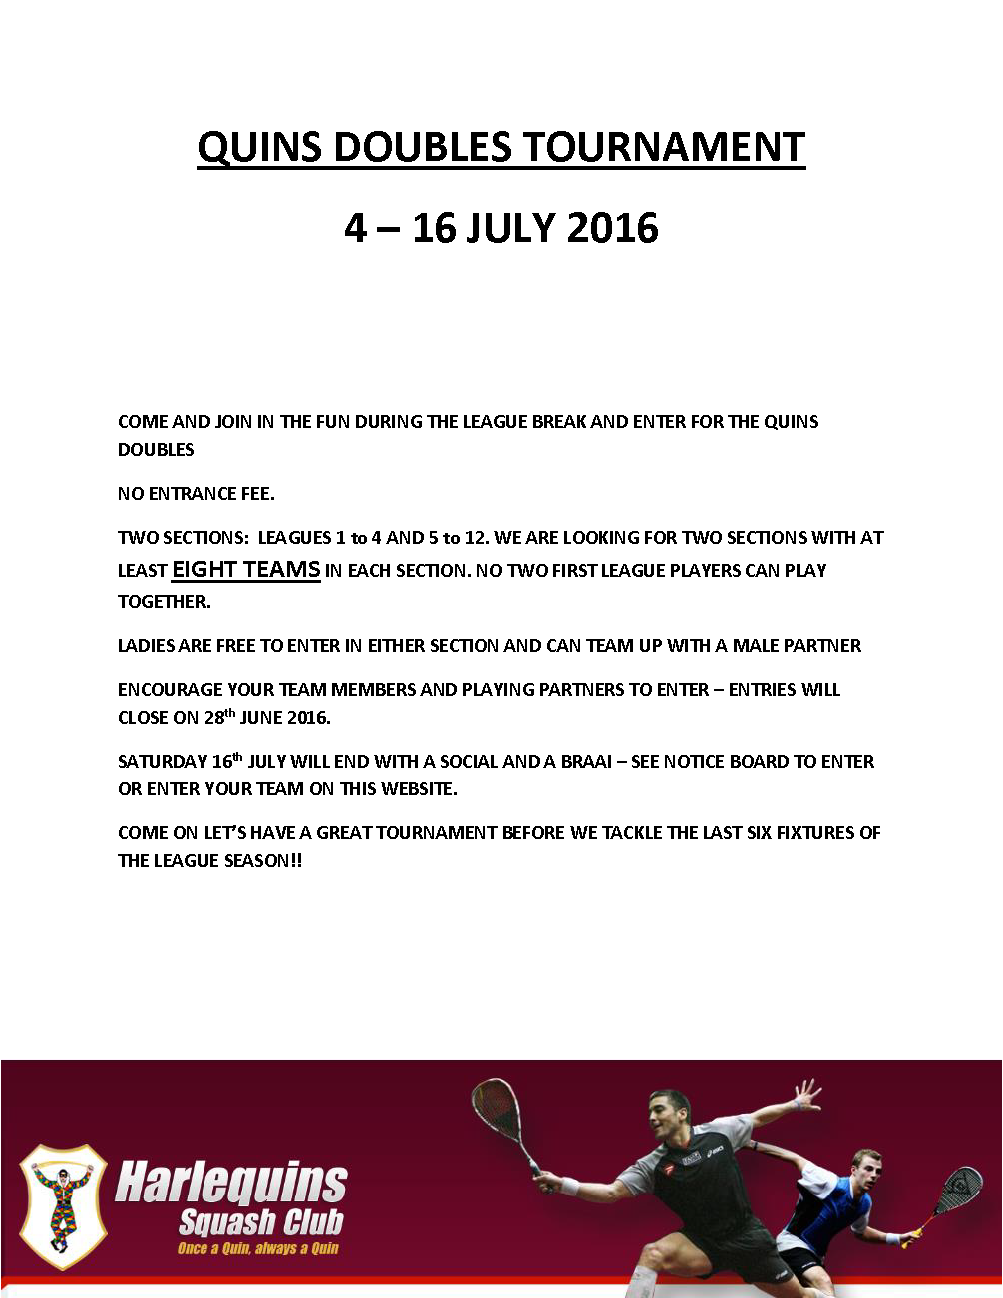 QUINS DOUBLES TOURNAMENT July 2016